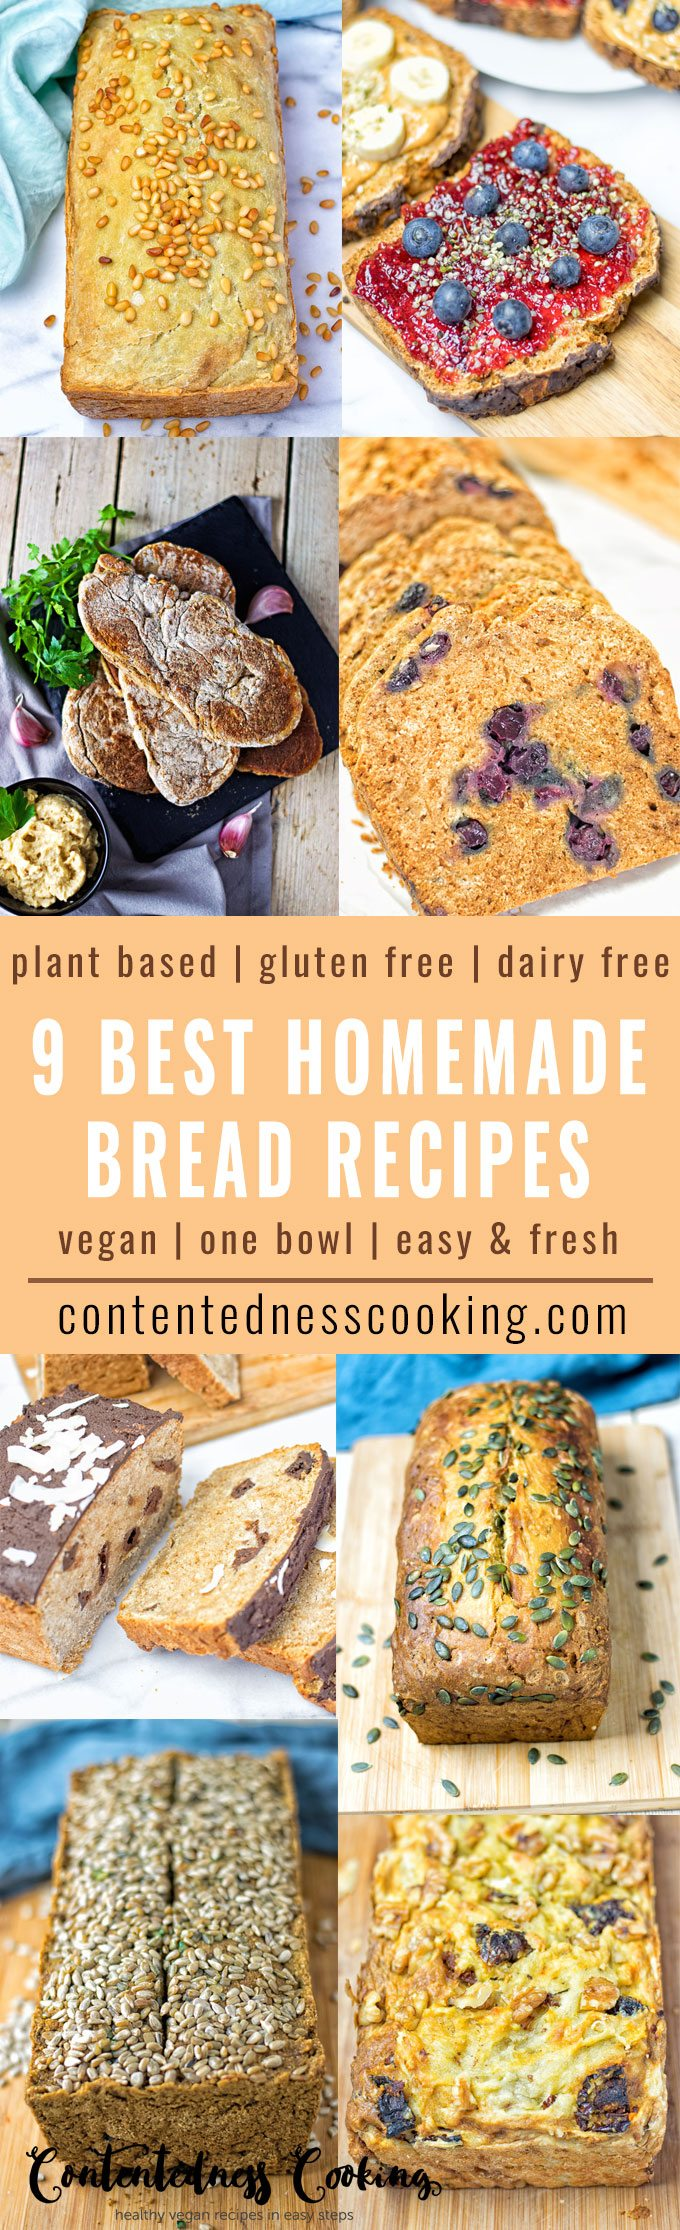 9 Best Homemade Vegan Bread Recipes | #vegan #glutenfree #contentednesscooking #plantbased #dairyfree